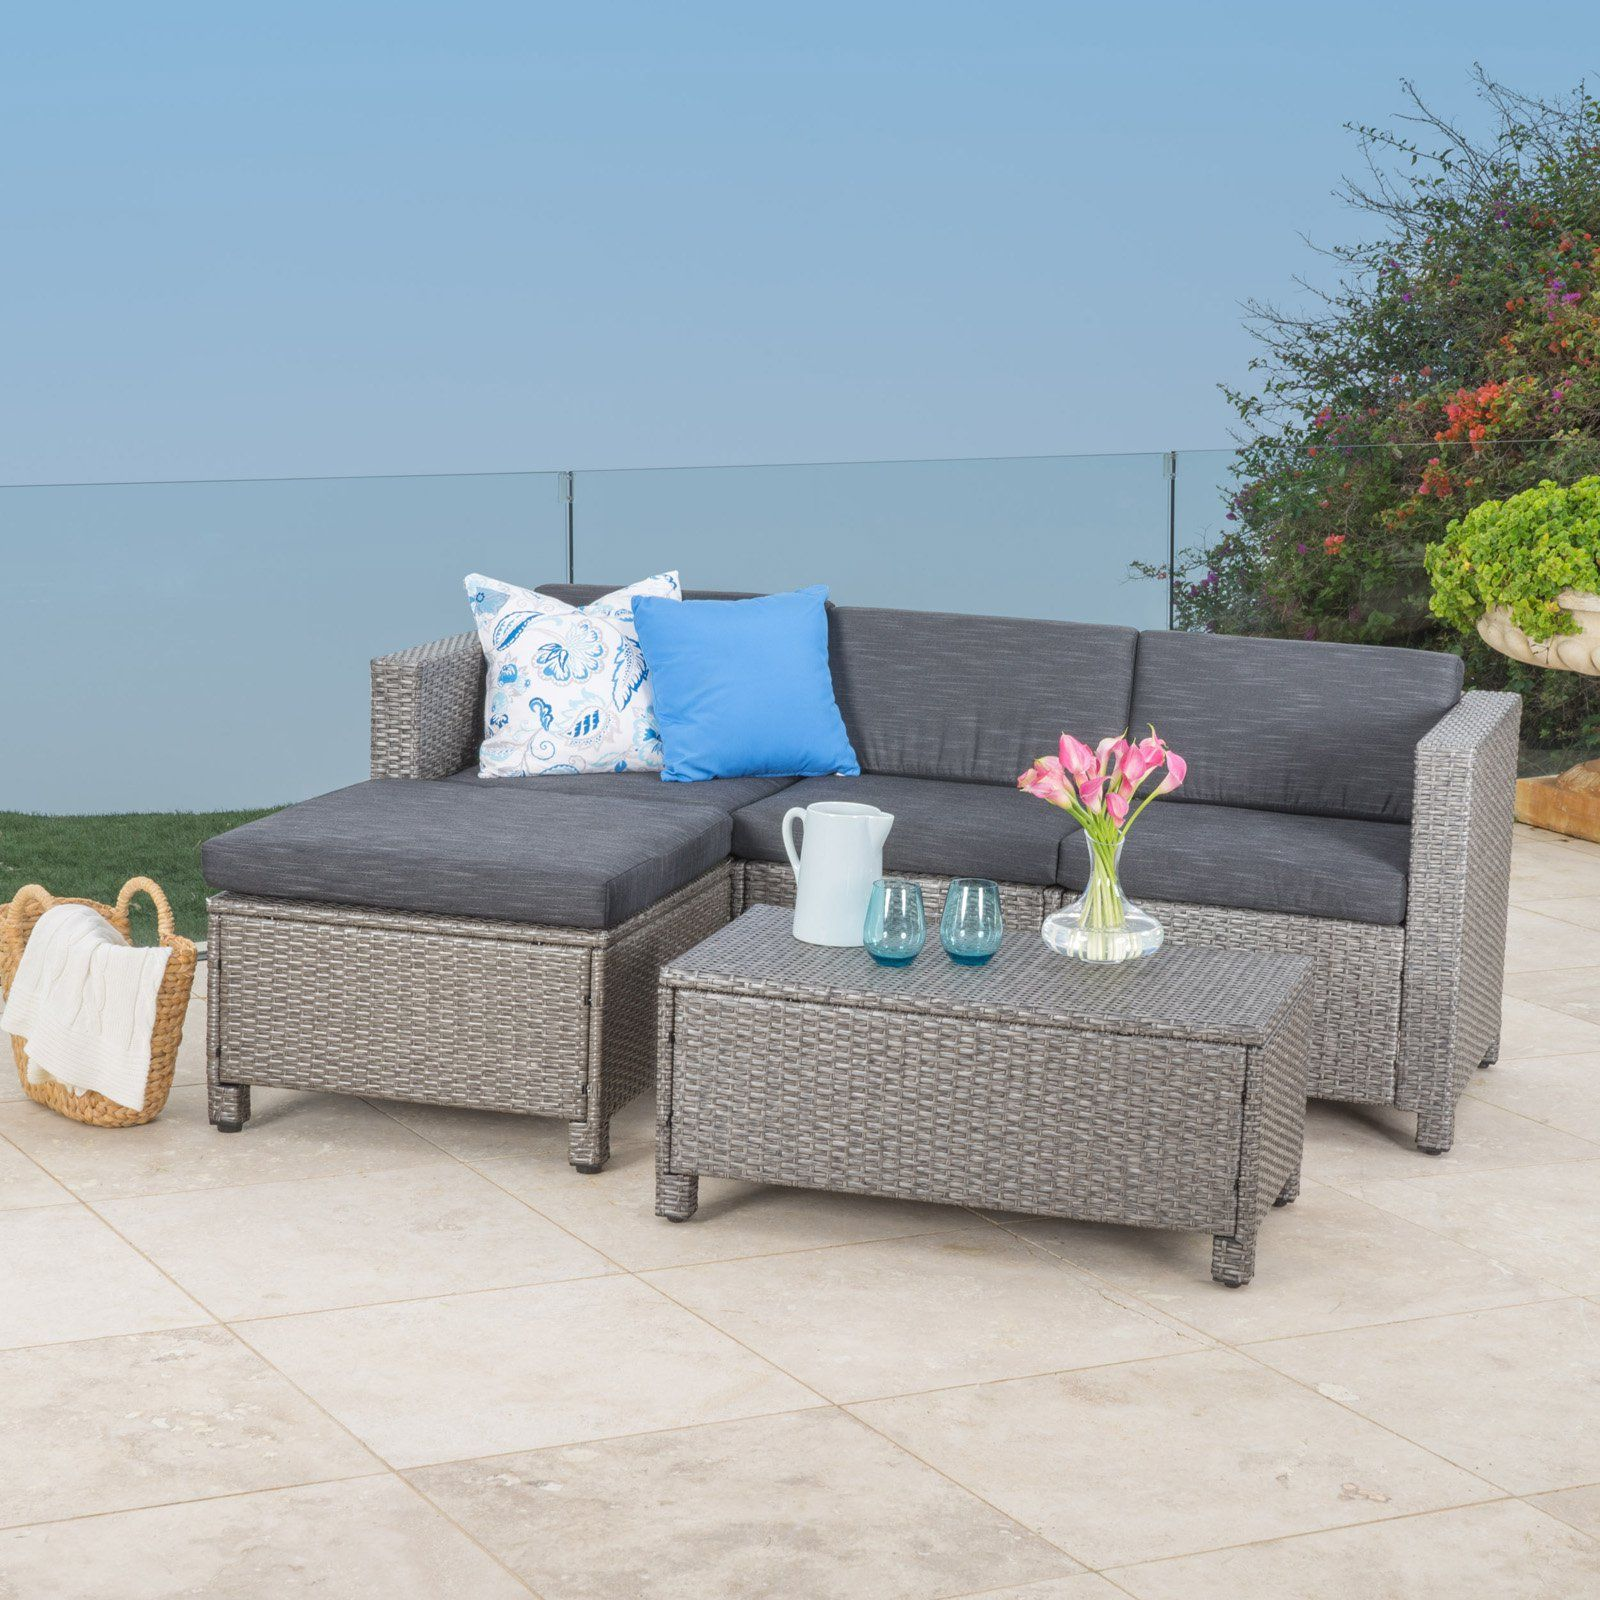 Outdoor best selling home decor furniture mariah 5 piece patio conversation set 296667